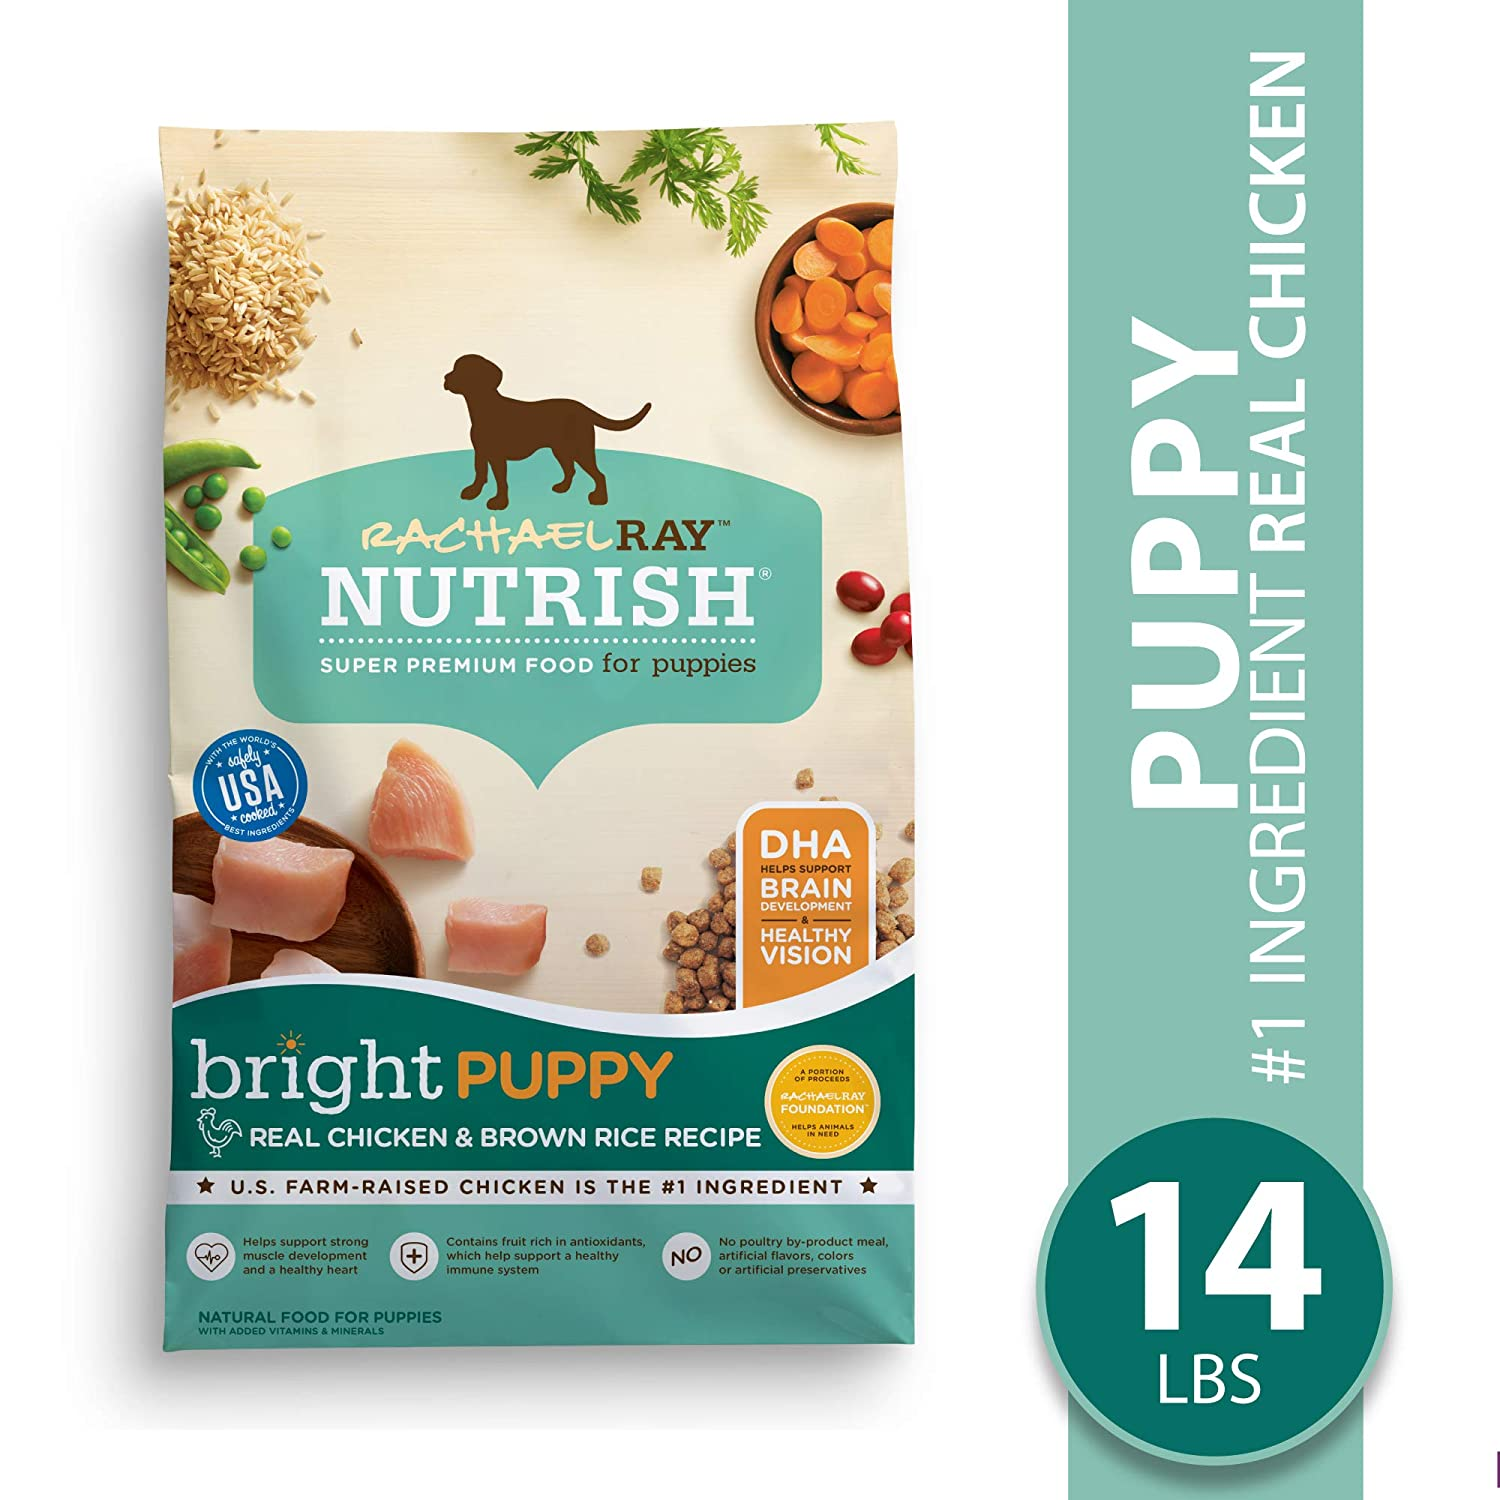 7. Rachael Ray Nutrish Bright Puppy Natural Real Chicken & Brown Rice Recipe Dry Dog Food